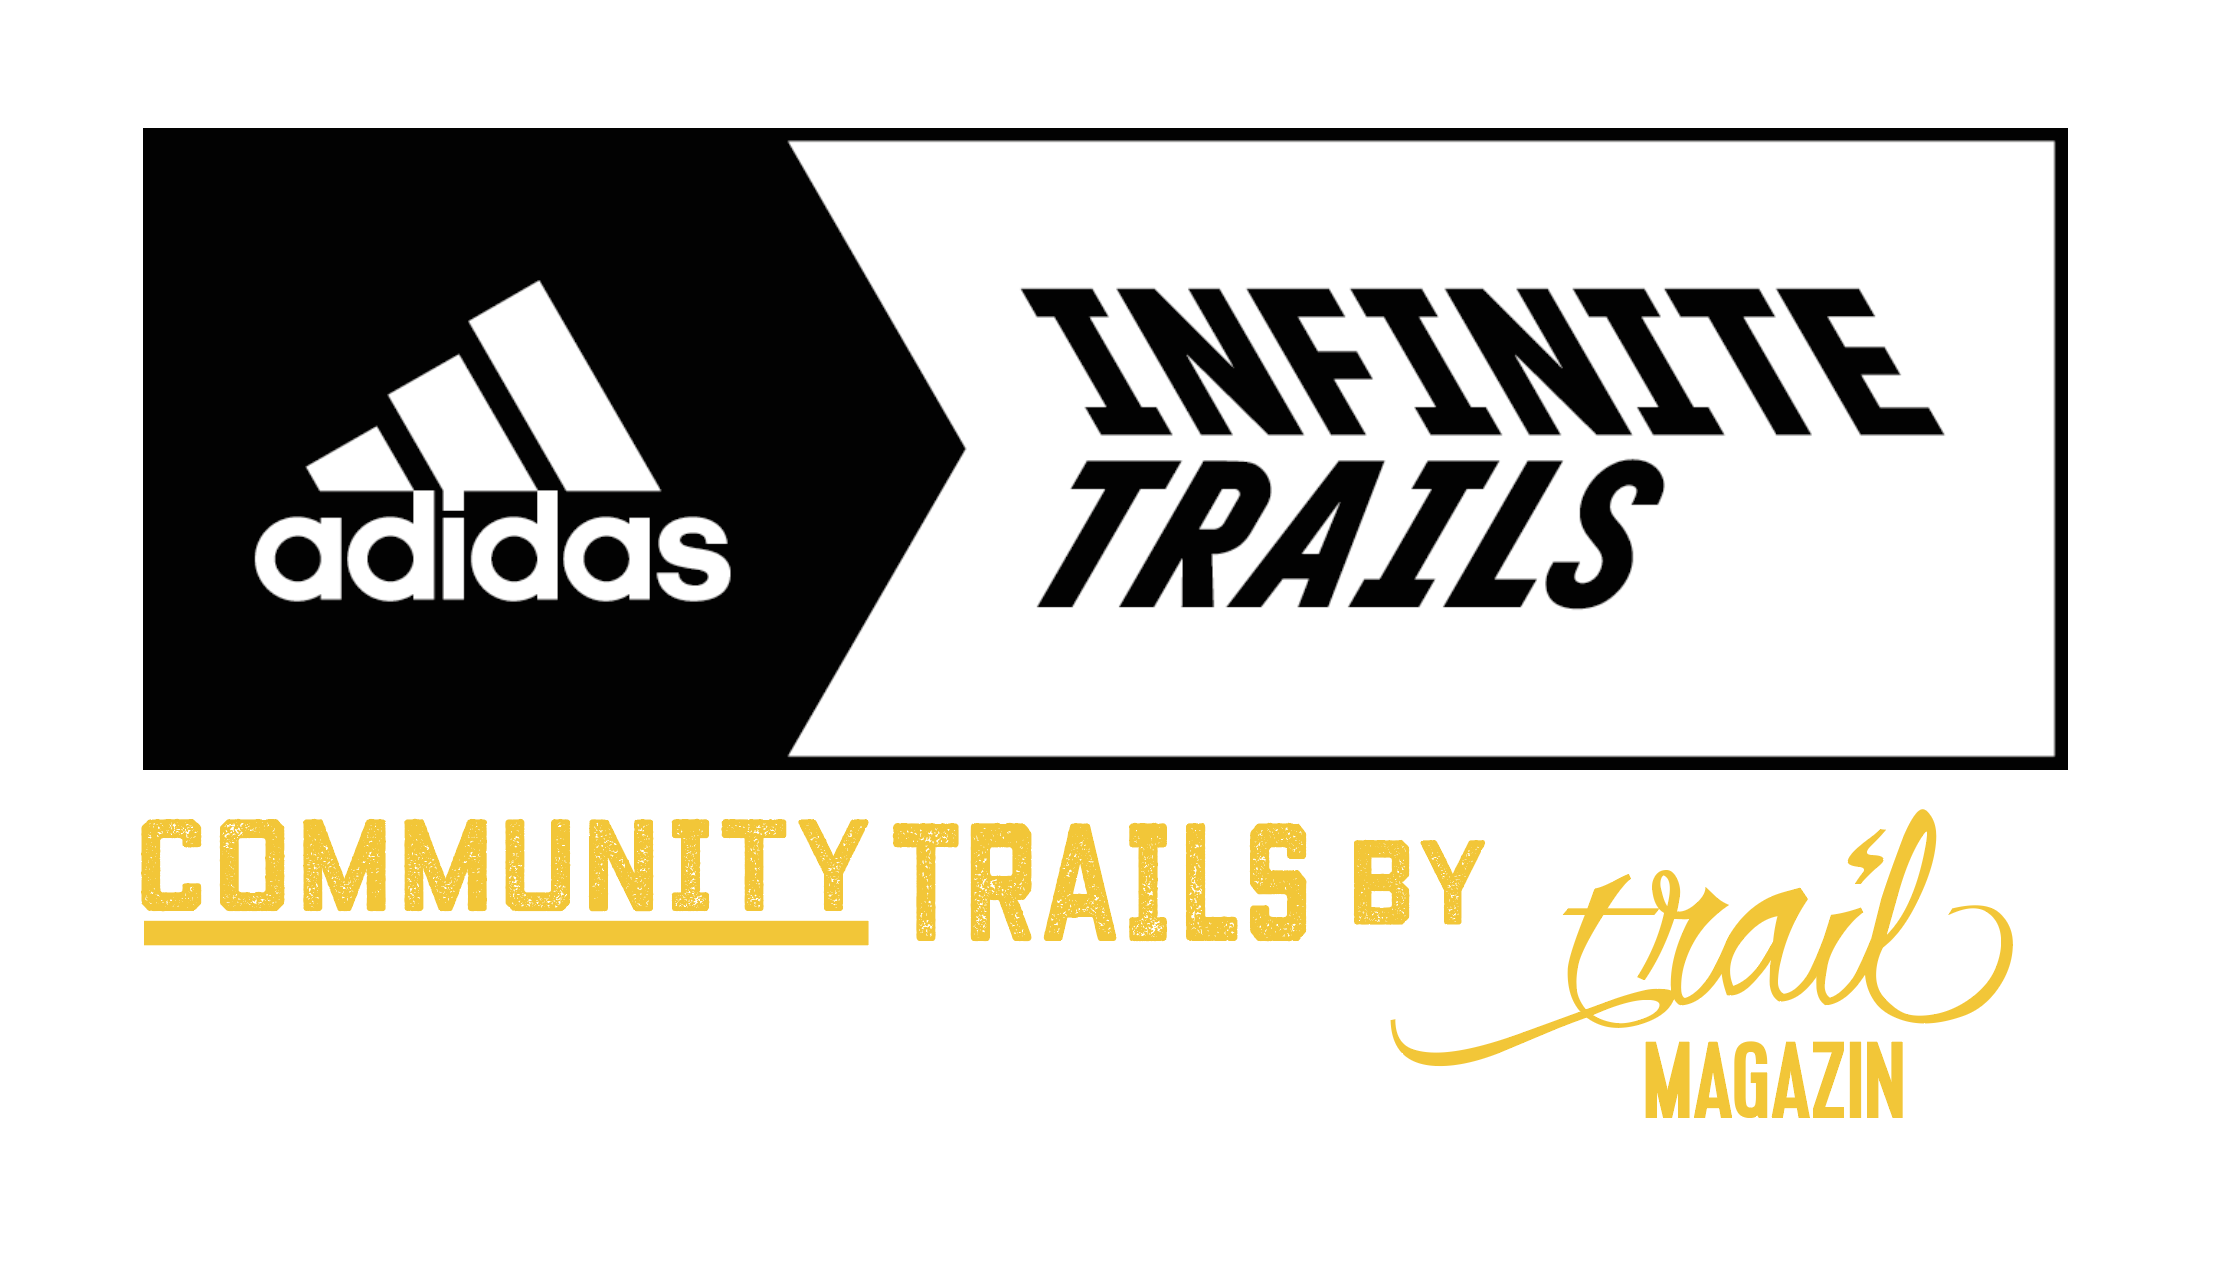 3 Community Trails: Mit TRAIL und ADIDAS zu den INFINITE TRAILS nach Bad Gastein